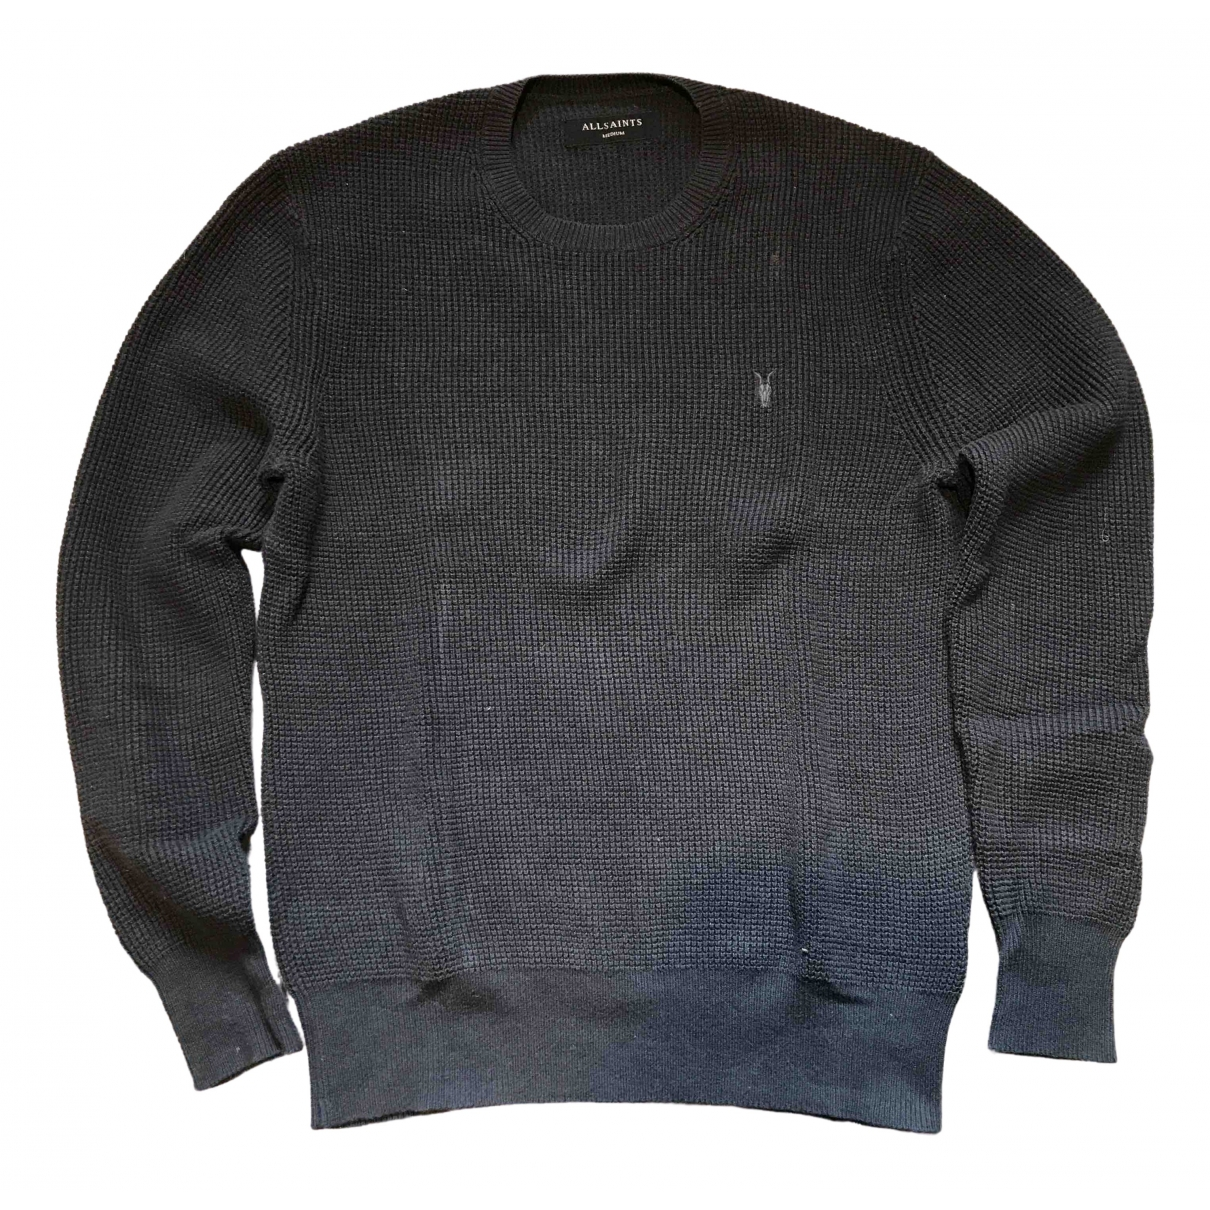 All Saints \N Black Cotton Knitwear & Sweatshirts for Men M International